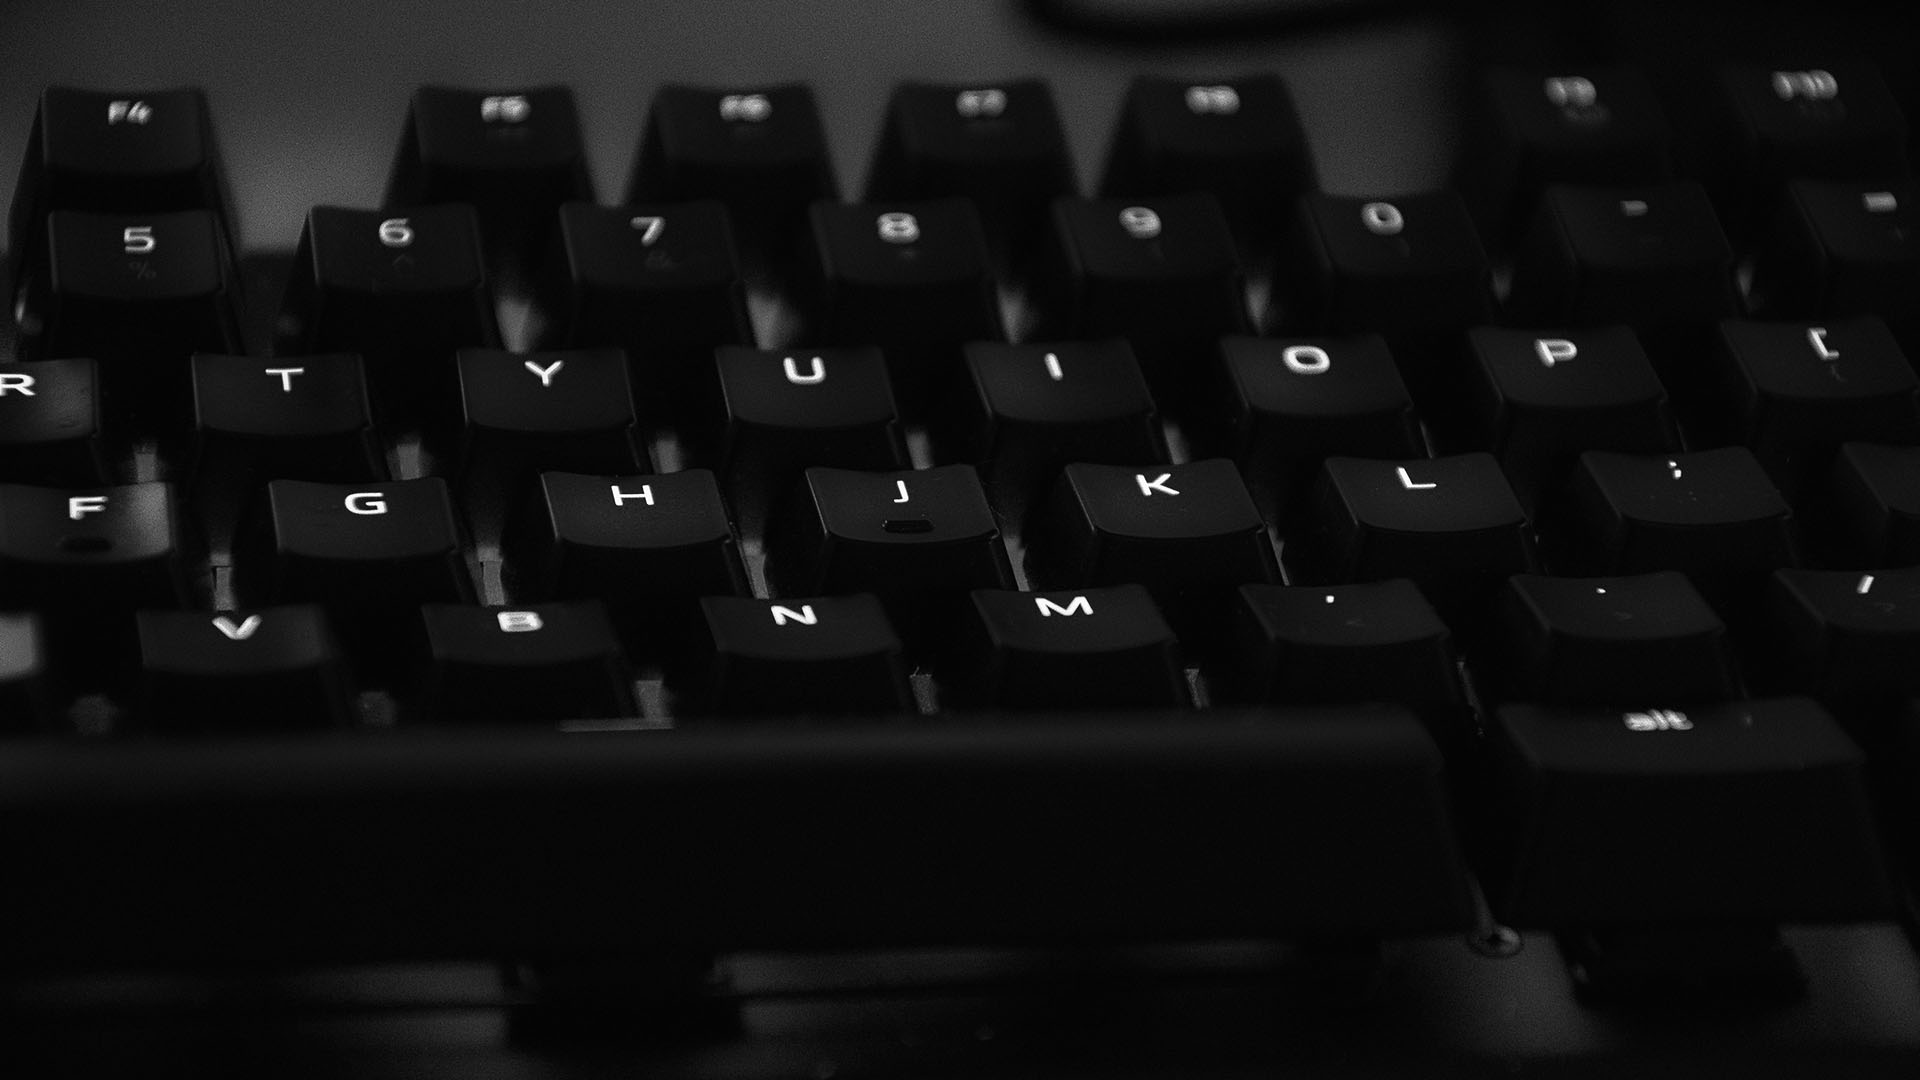 Black and white image of a keyboard.